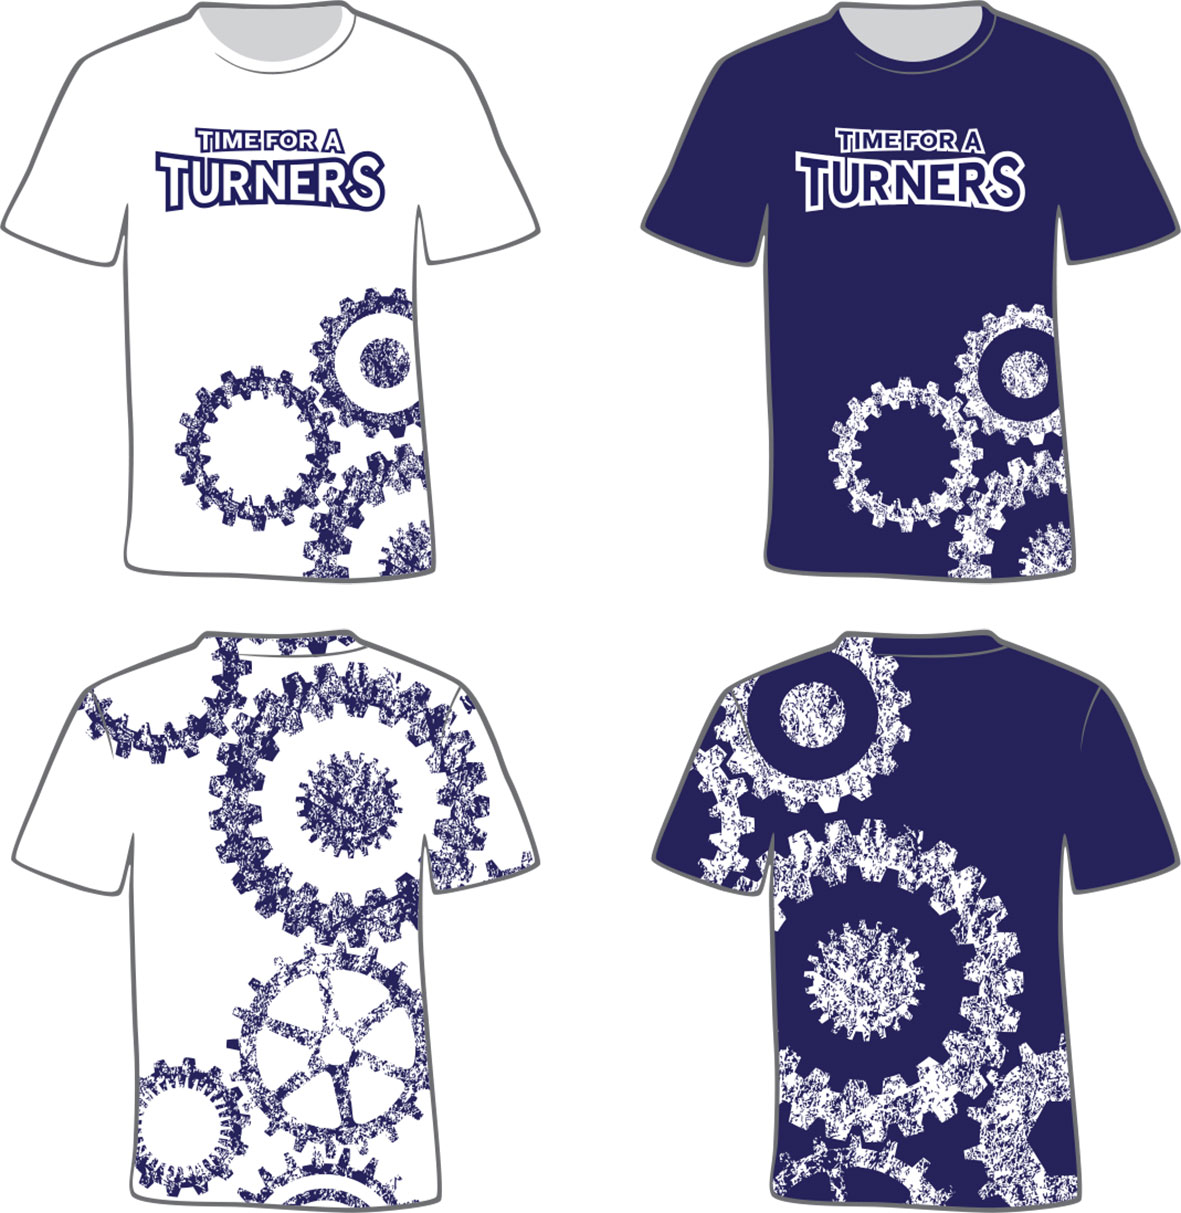 Turners T-Shirt Designs